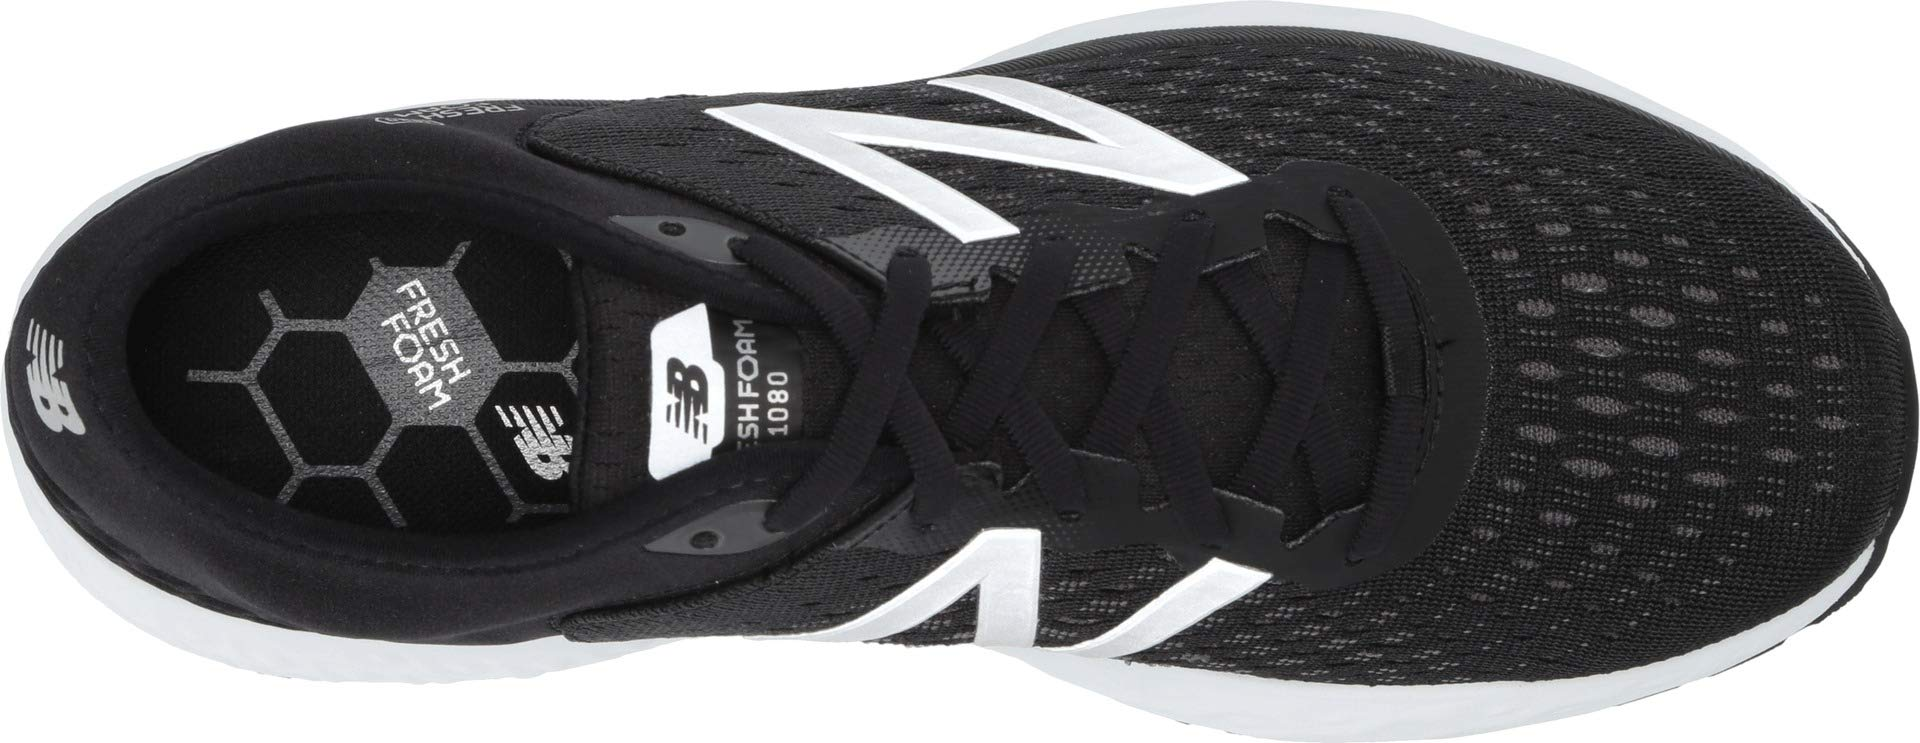 New Balance Men's 1080v9 Fresh Foam Running Shoe, Black/White, 7 W US by New Balance (Image #2)